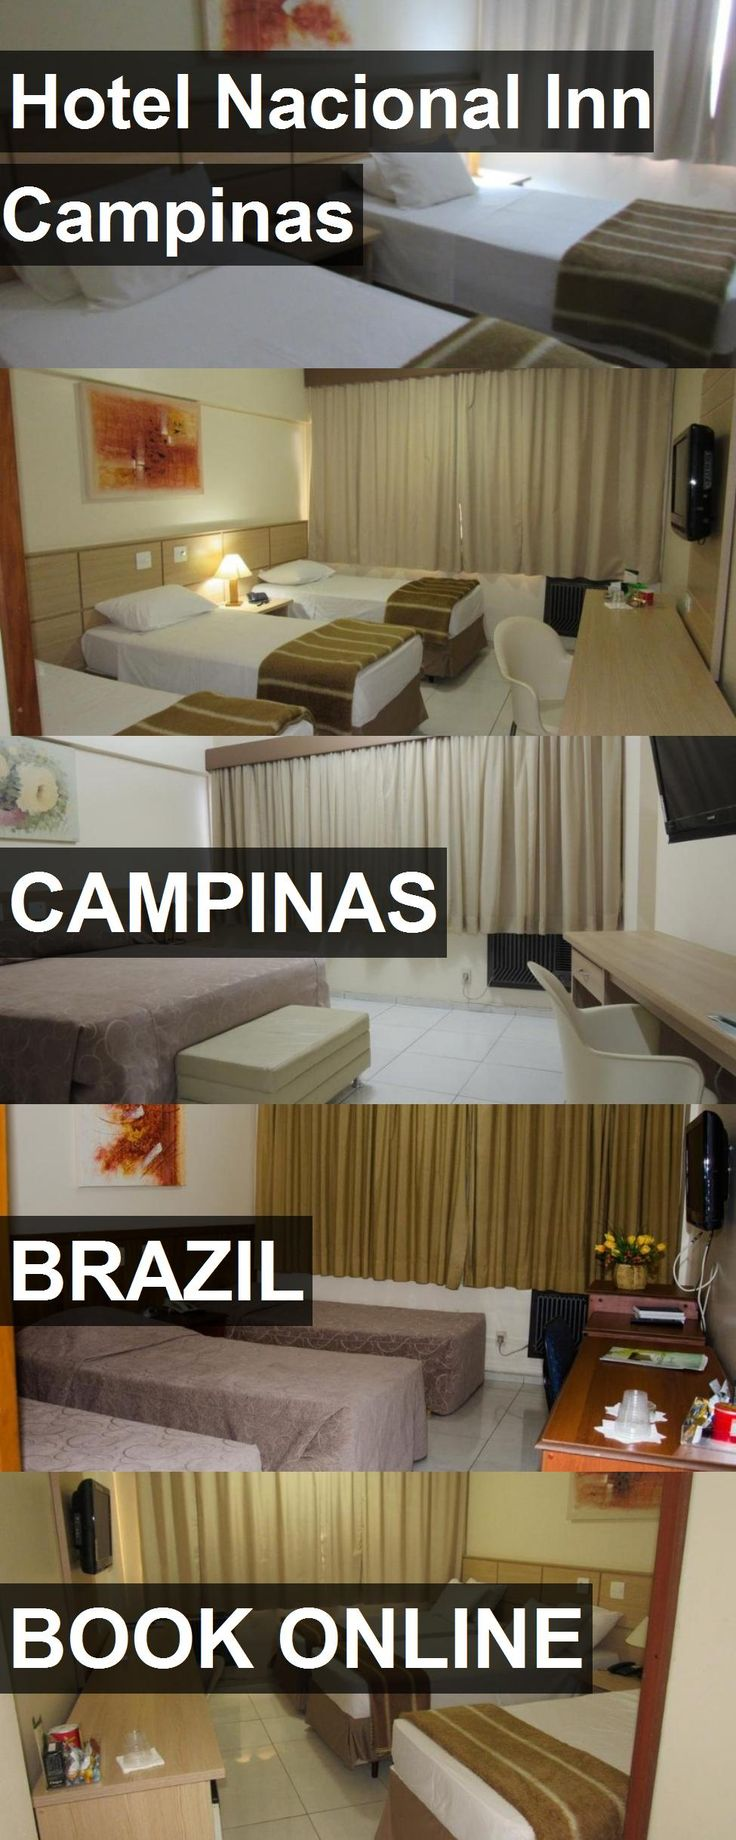 Hotel Hotel Nacional Inn Campinas in Campinas, Brazil. For more information, photos, reviews and best prices please follow the link. #Brazil #Campinas #HotelNacionalInnCampinas #hotel #travel #vacation